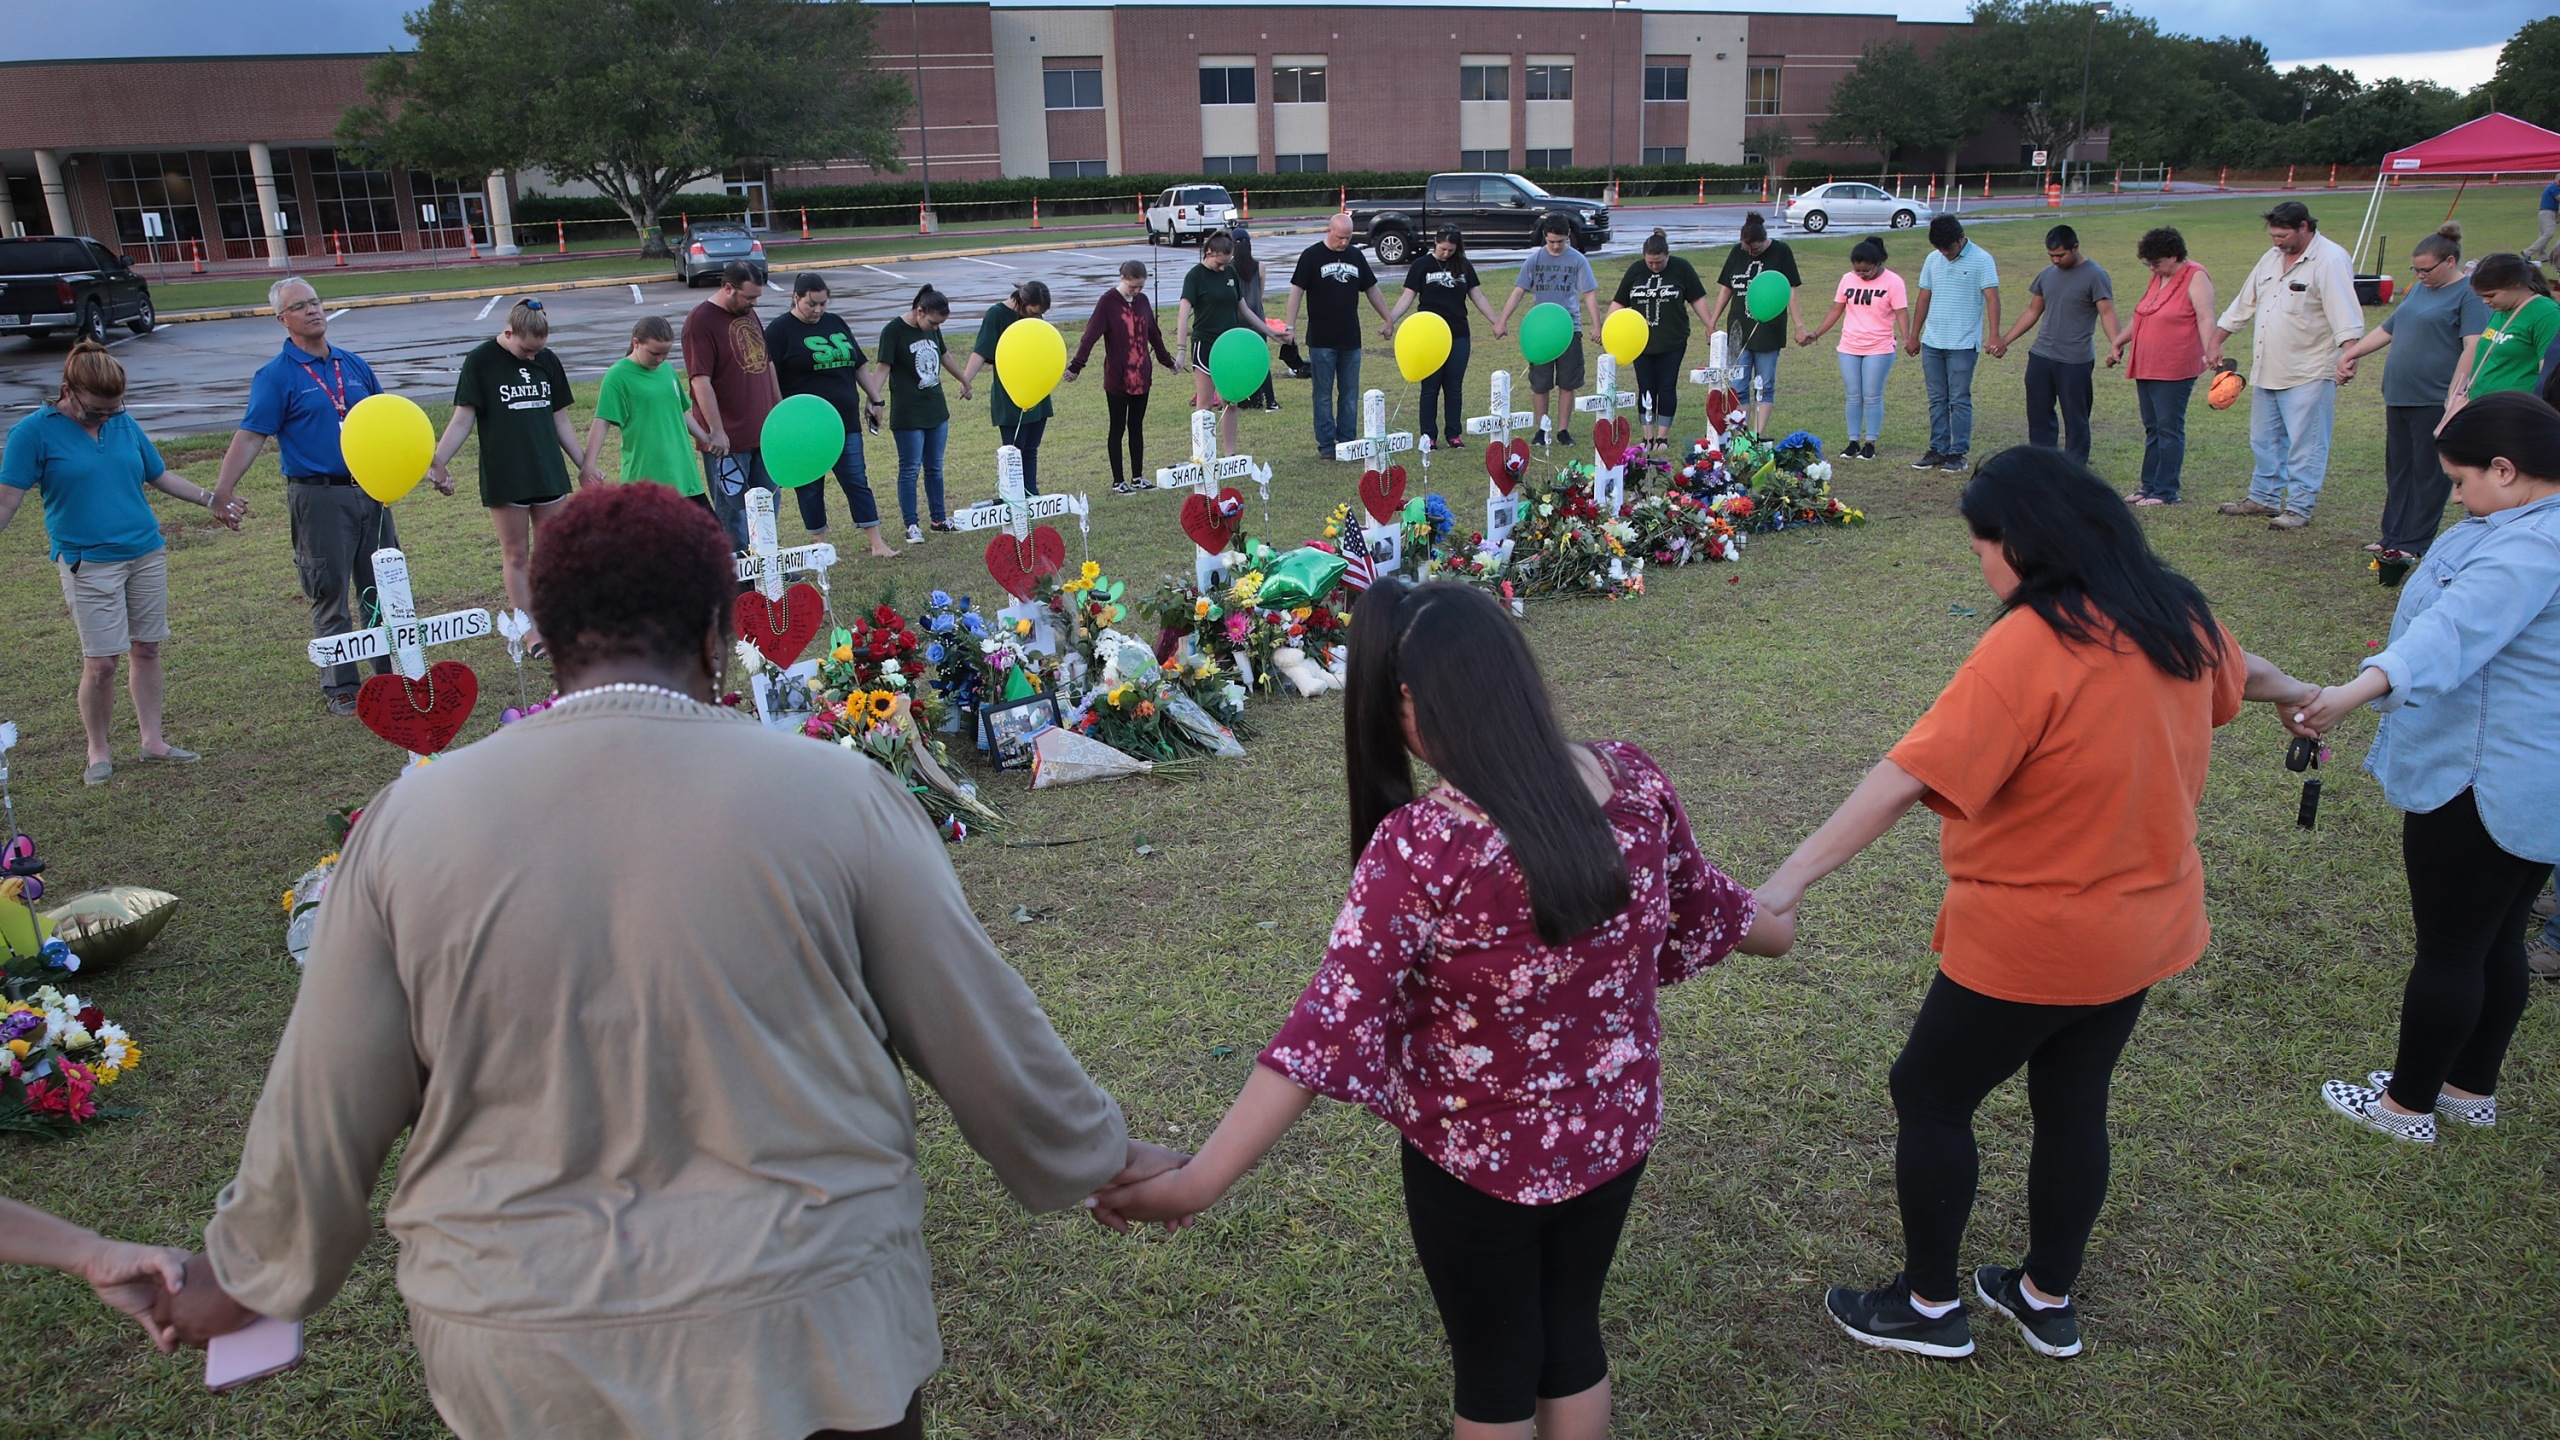 Mourners pray around a memorial in front of Santa Fe High School on May 21, 2018 in Santa Fe, Texas. (Credit: Scott Olson/Getty Images)